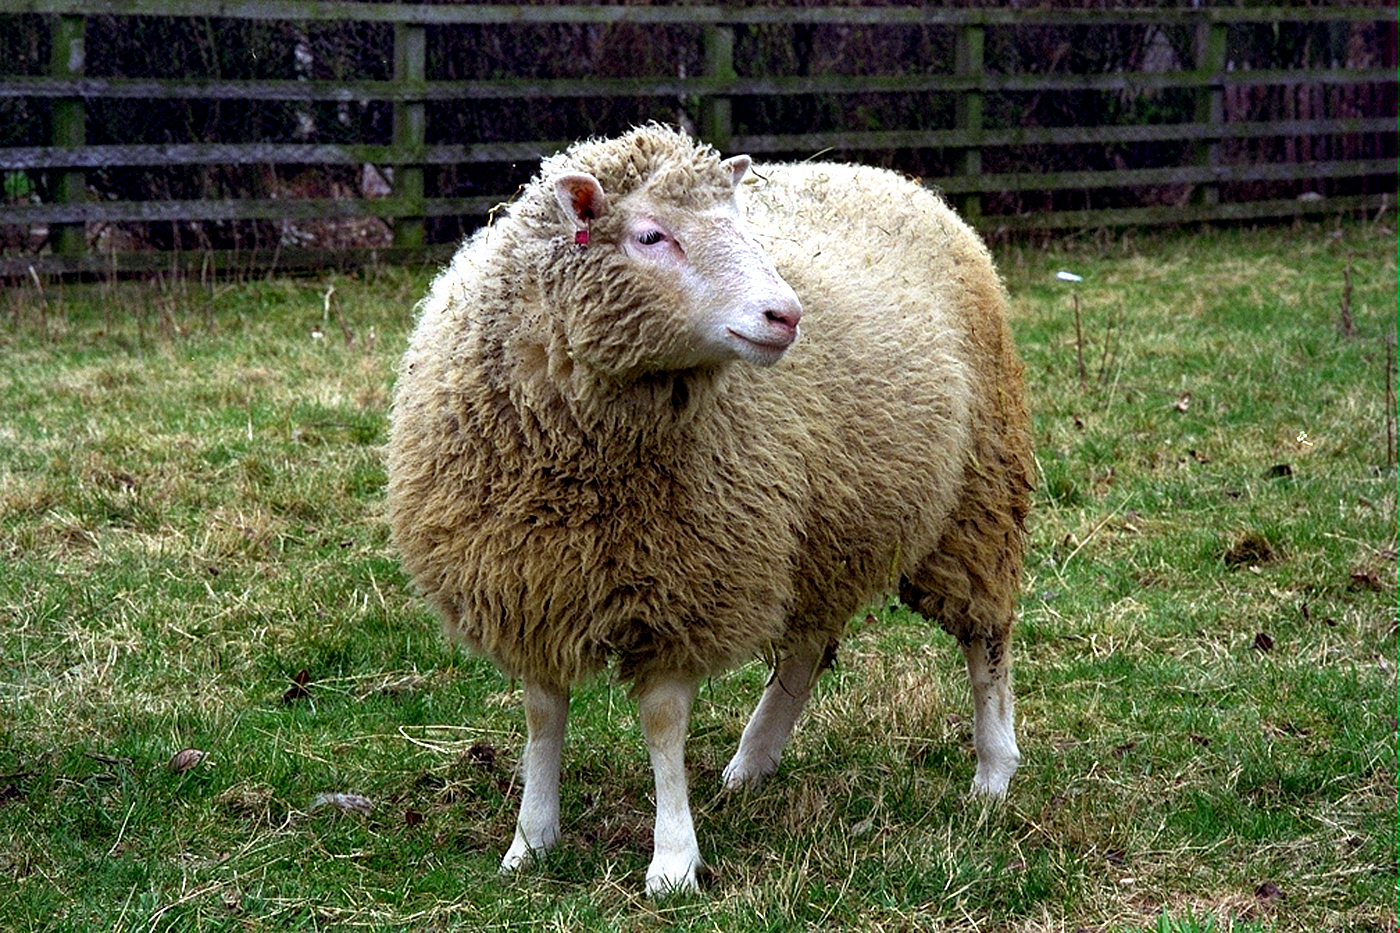 Dolly, The Sheep, Genetic Sheep, Genetically Engineered Sheep, osteoarthritis, Clone, Sheep Clone